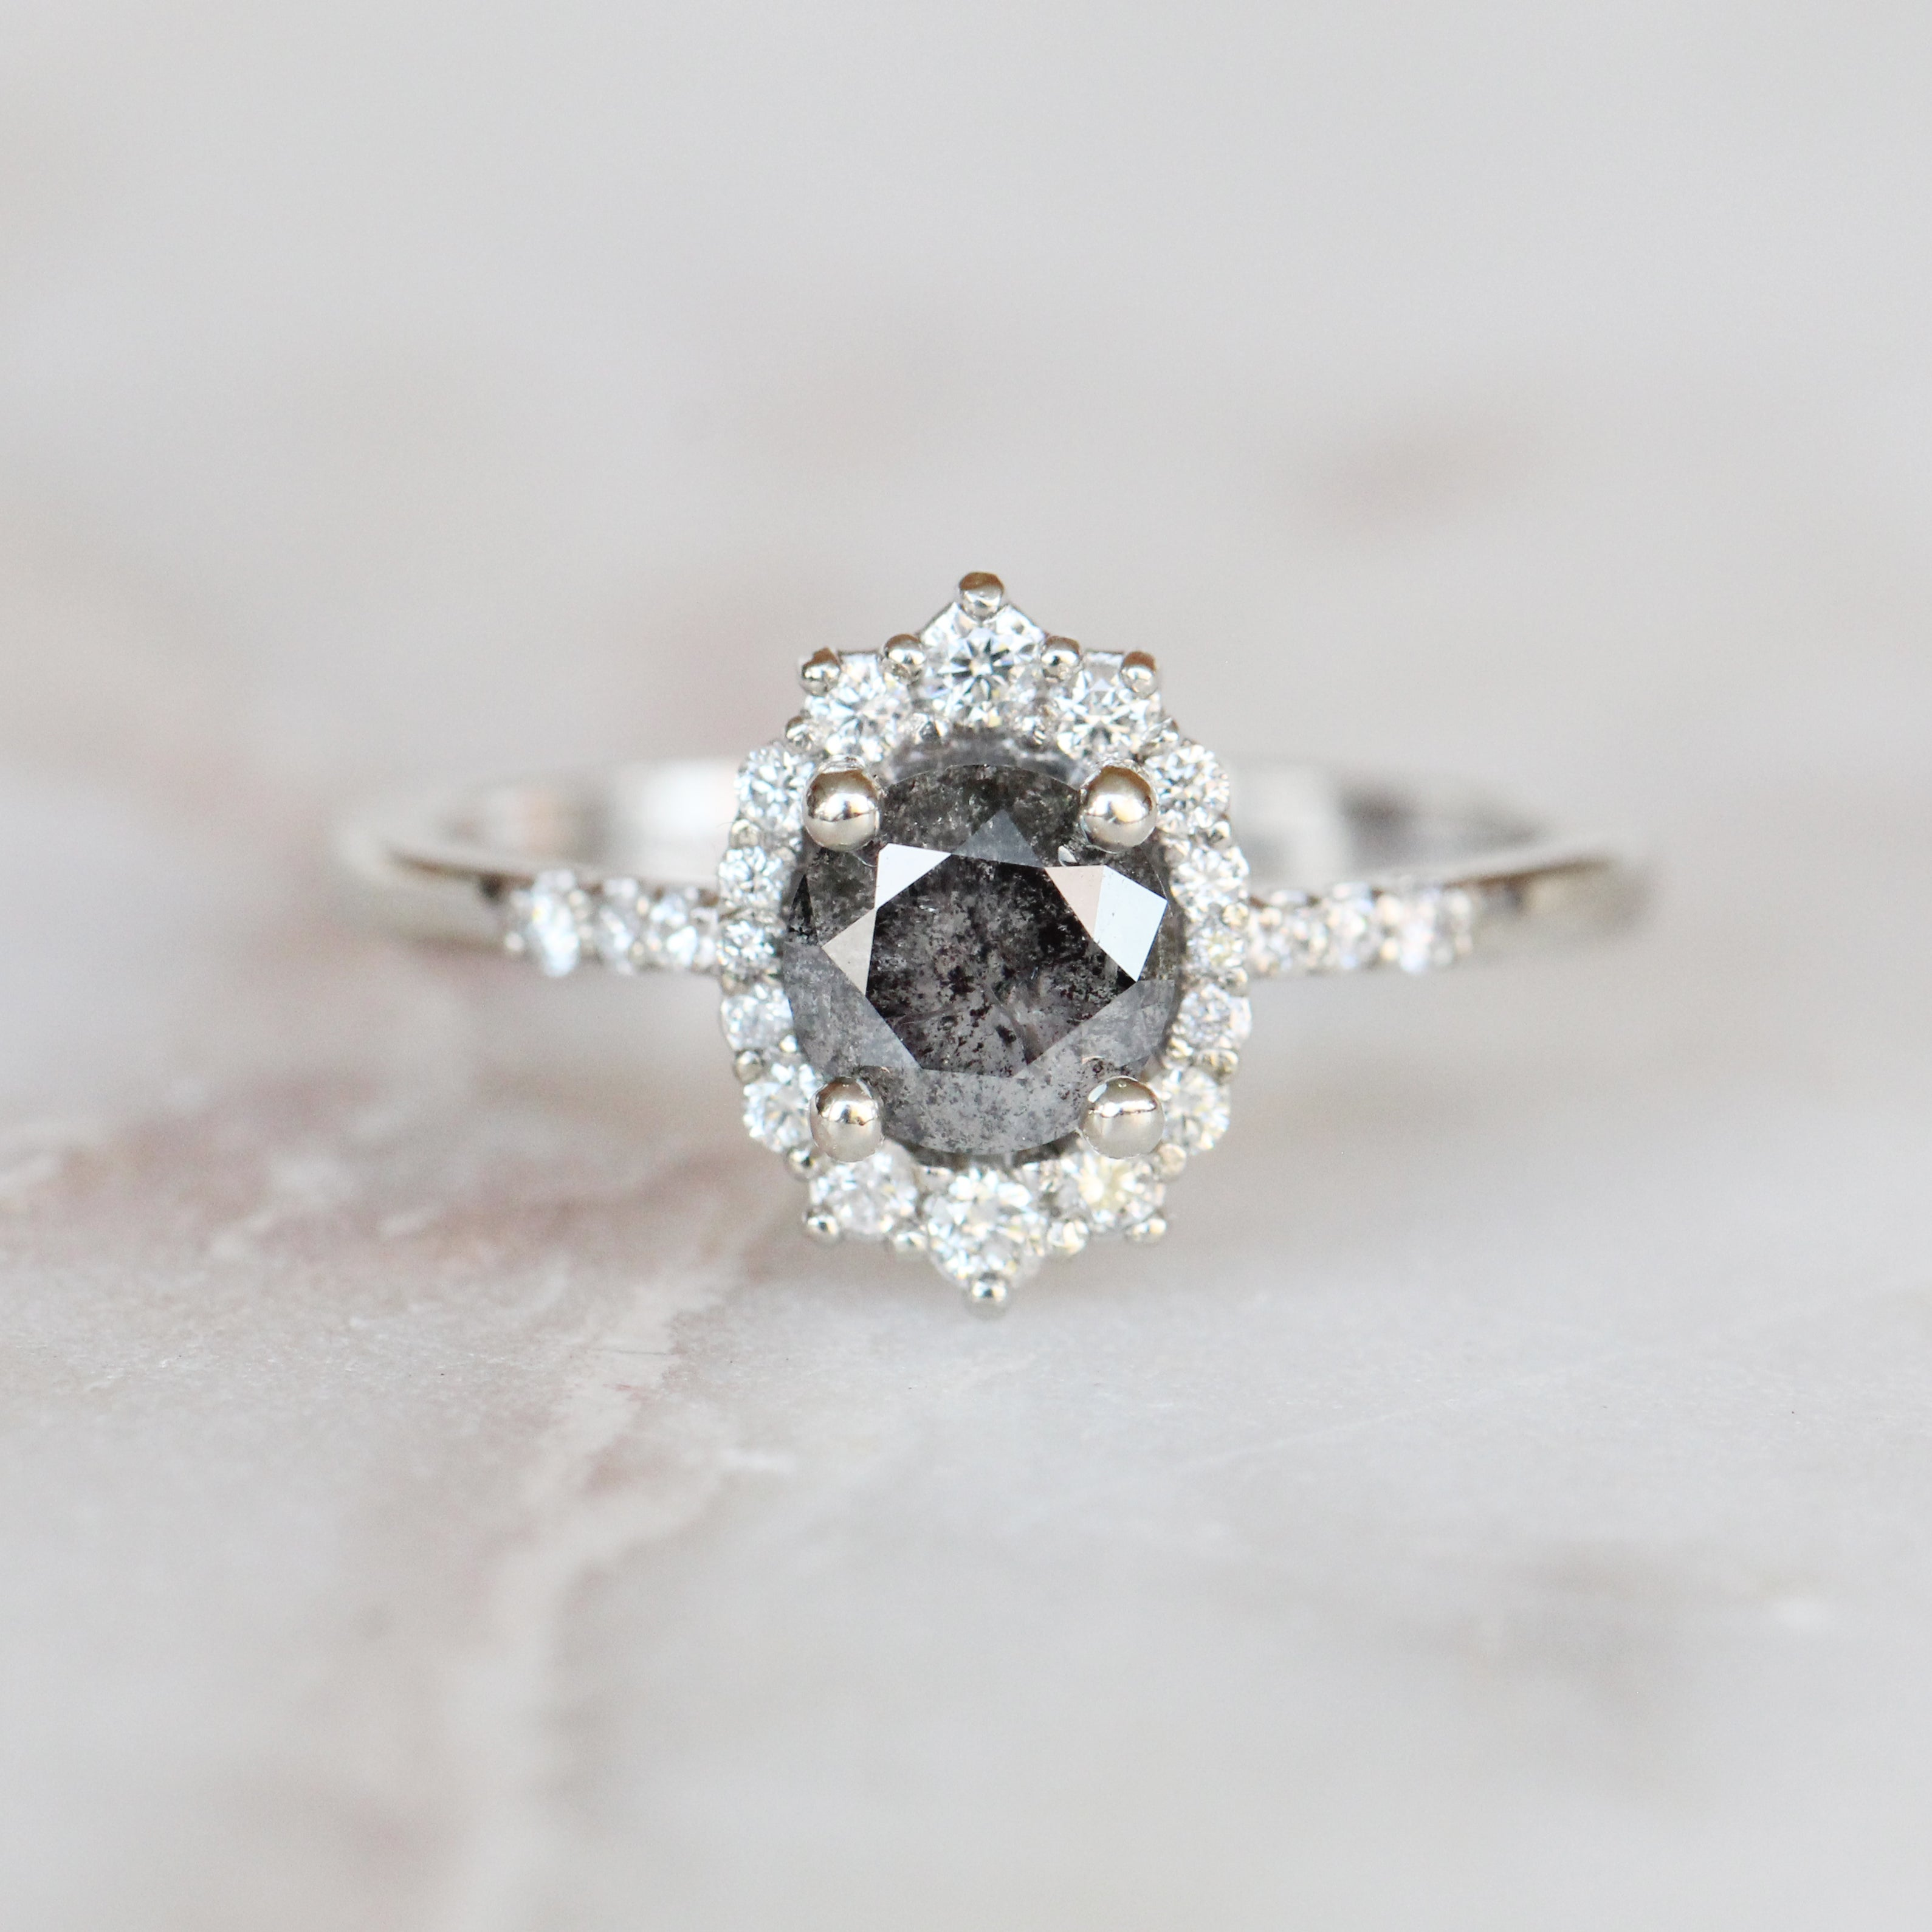 Grace Ring with a 0.79 Carat Celestial Diamond with Accents in 10k White - Ready to Size and Ship - Salt & Pepper Celestial Diamond Engagement Rings and Wedding Bands  by Midwinter Co.